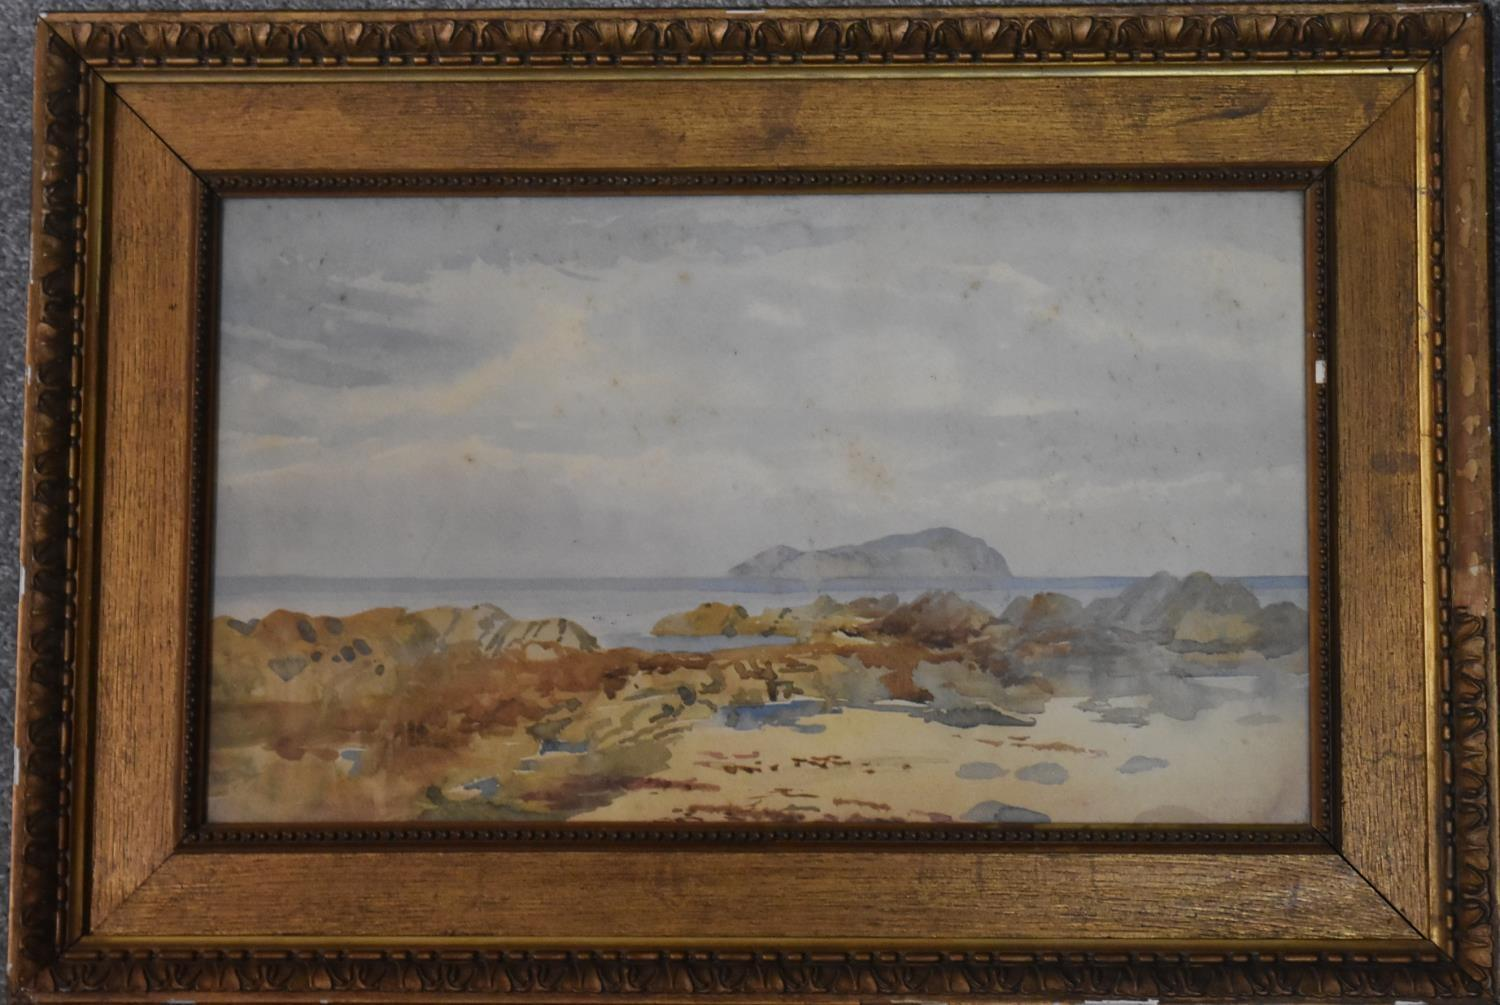 A framed and glazed watercolour of a rocky beach scene and two other framed and glazed watercolours. - Image 4 of 6